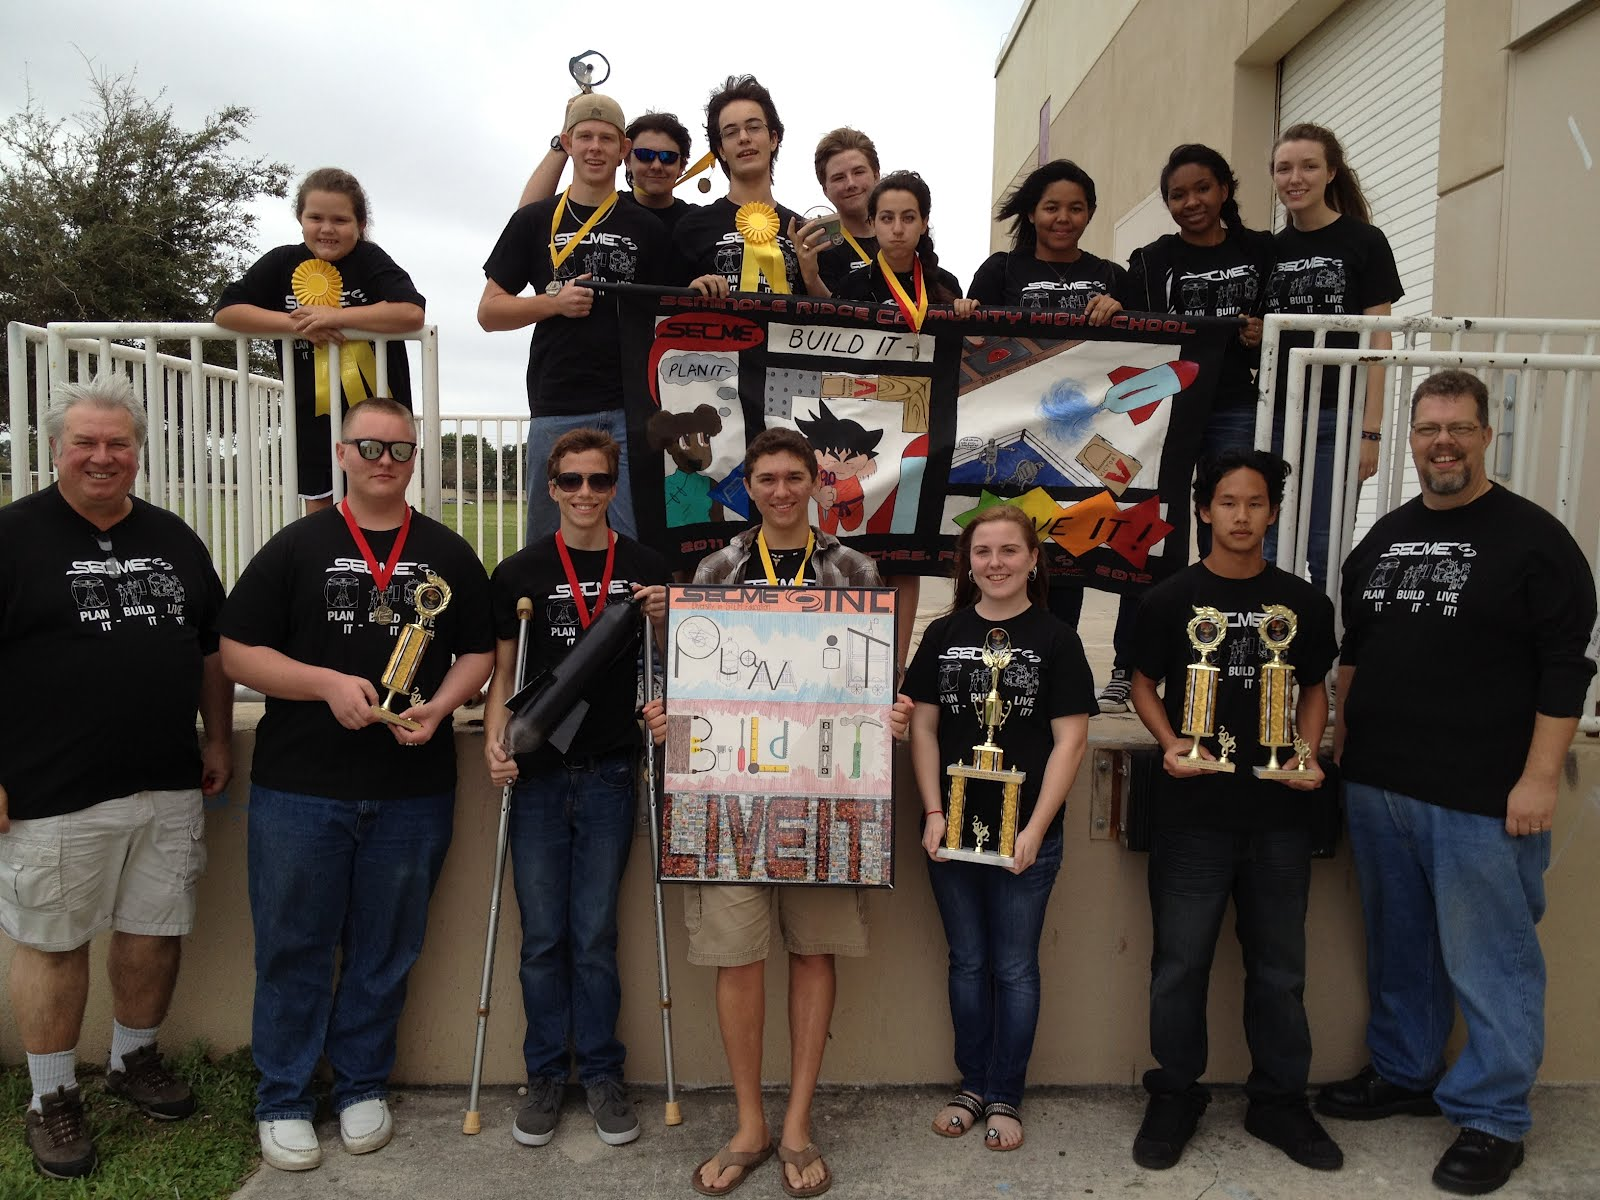 seminole ridge secme plan it build it live it win it and the hawks soared high honorable mention brain bowl honorable mention mousetrap powered vehicle second place water rocket second place poster